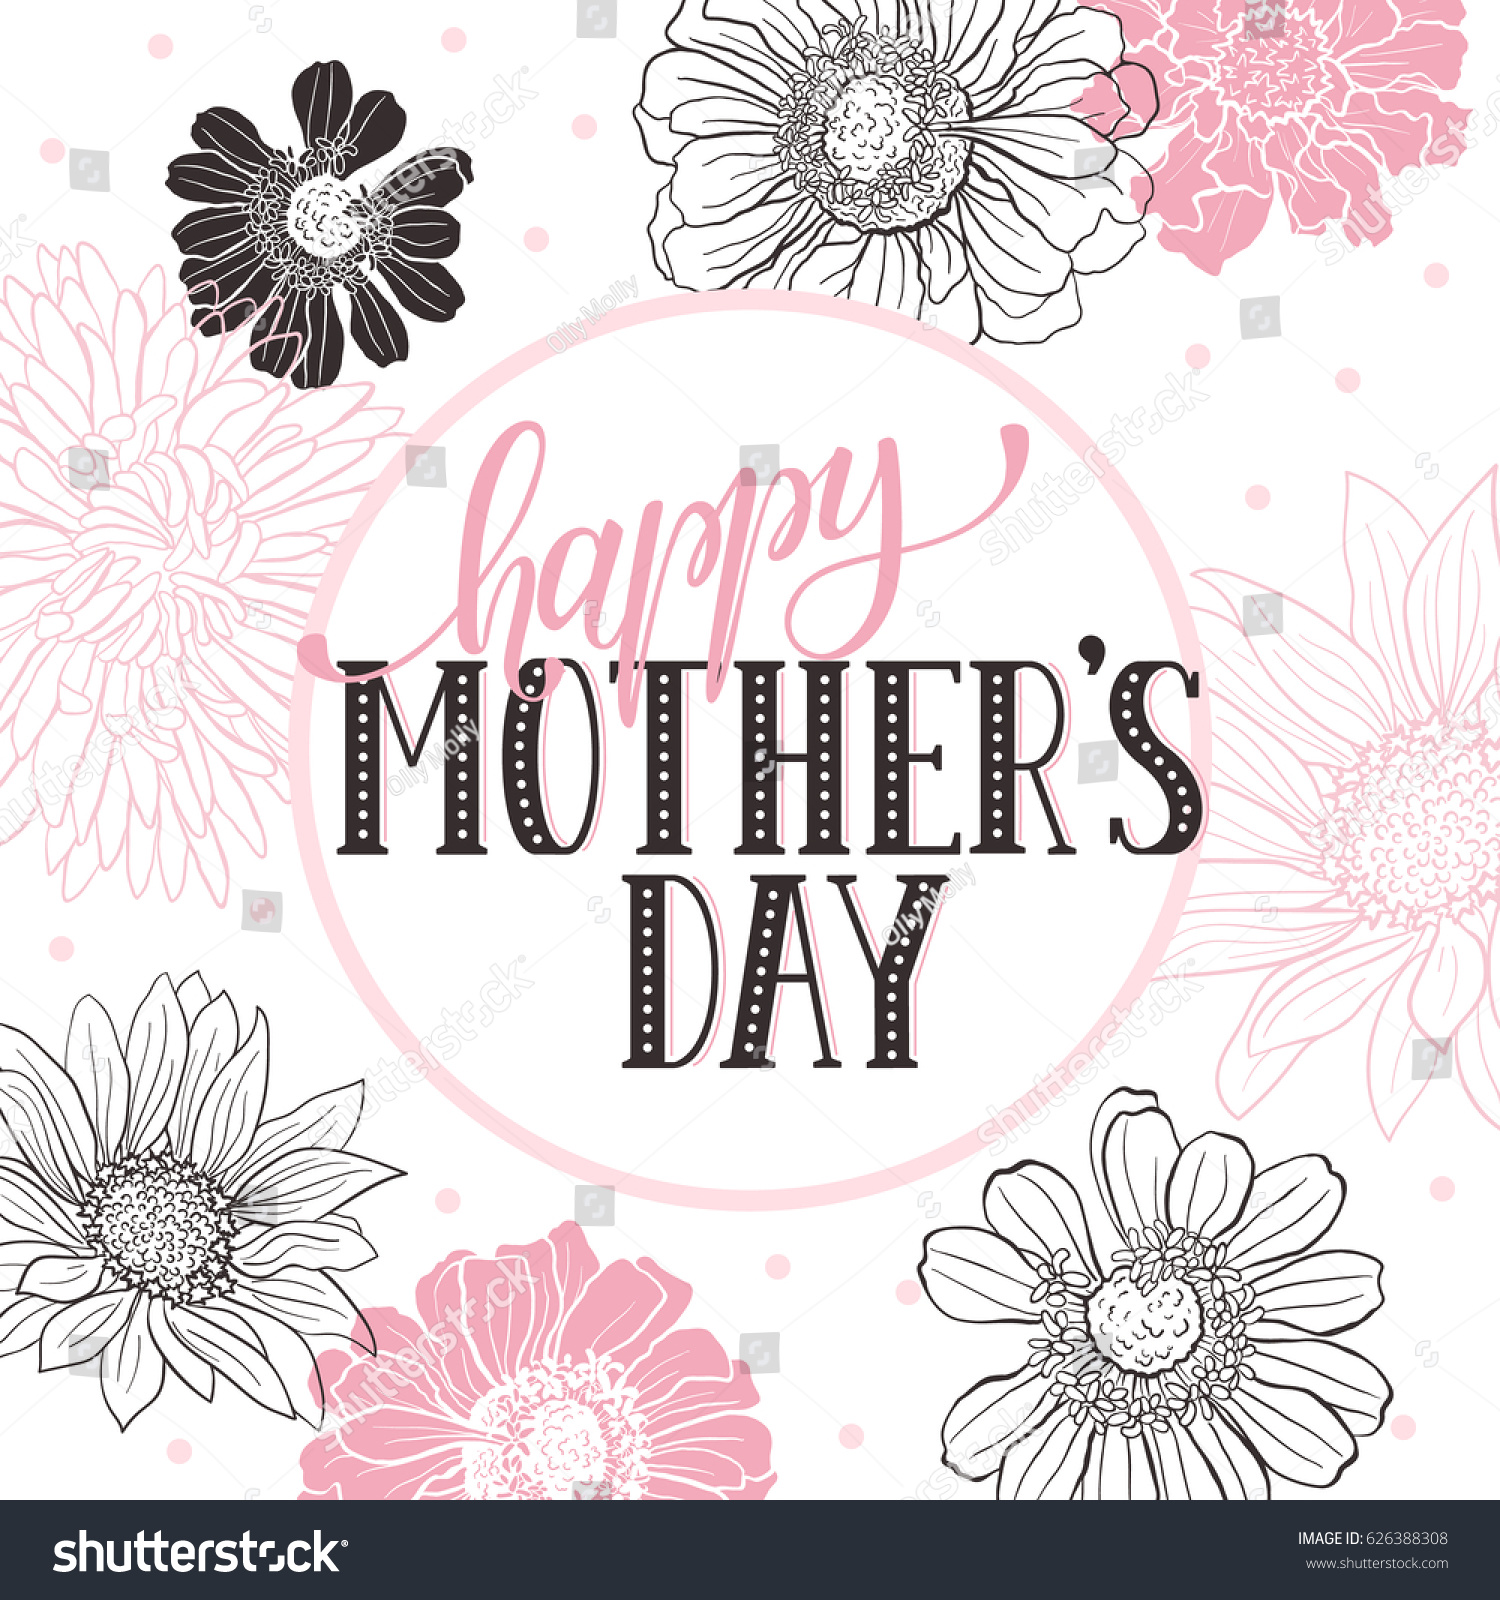 Mother day greeting card happy mothers stock vector 626388308 mother day greeting card happy mothers day wording with flowers outlines on white background kristyandbryce Choice Image